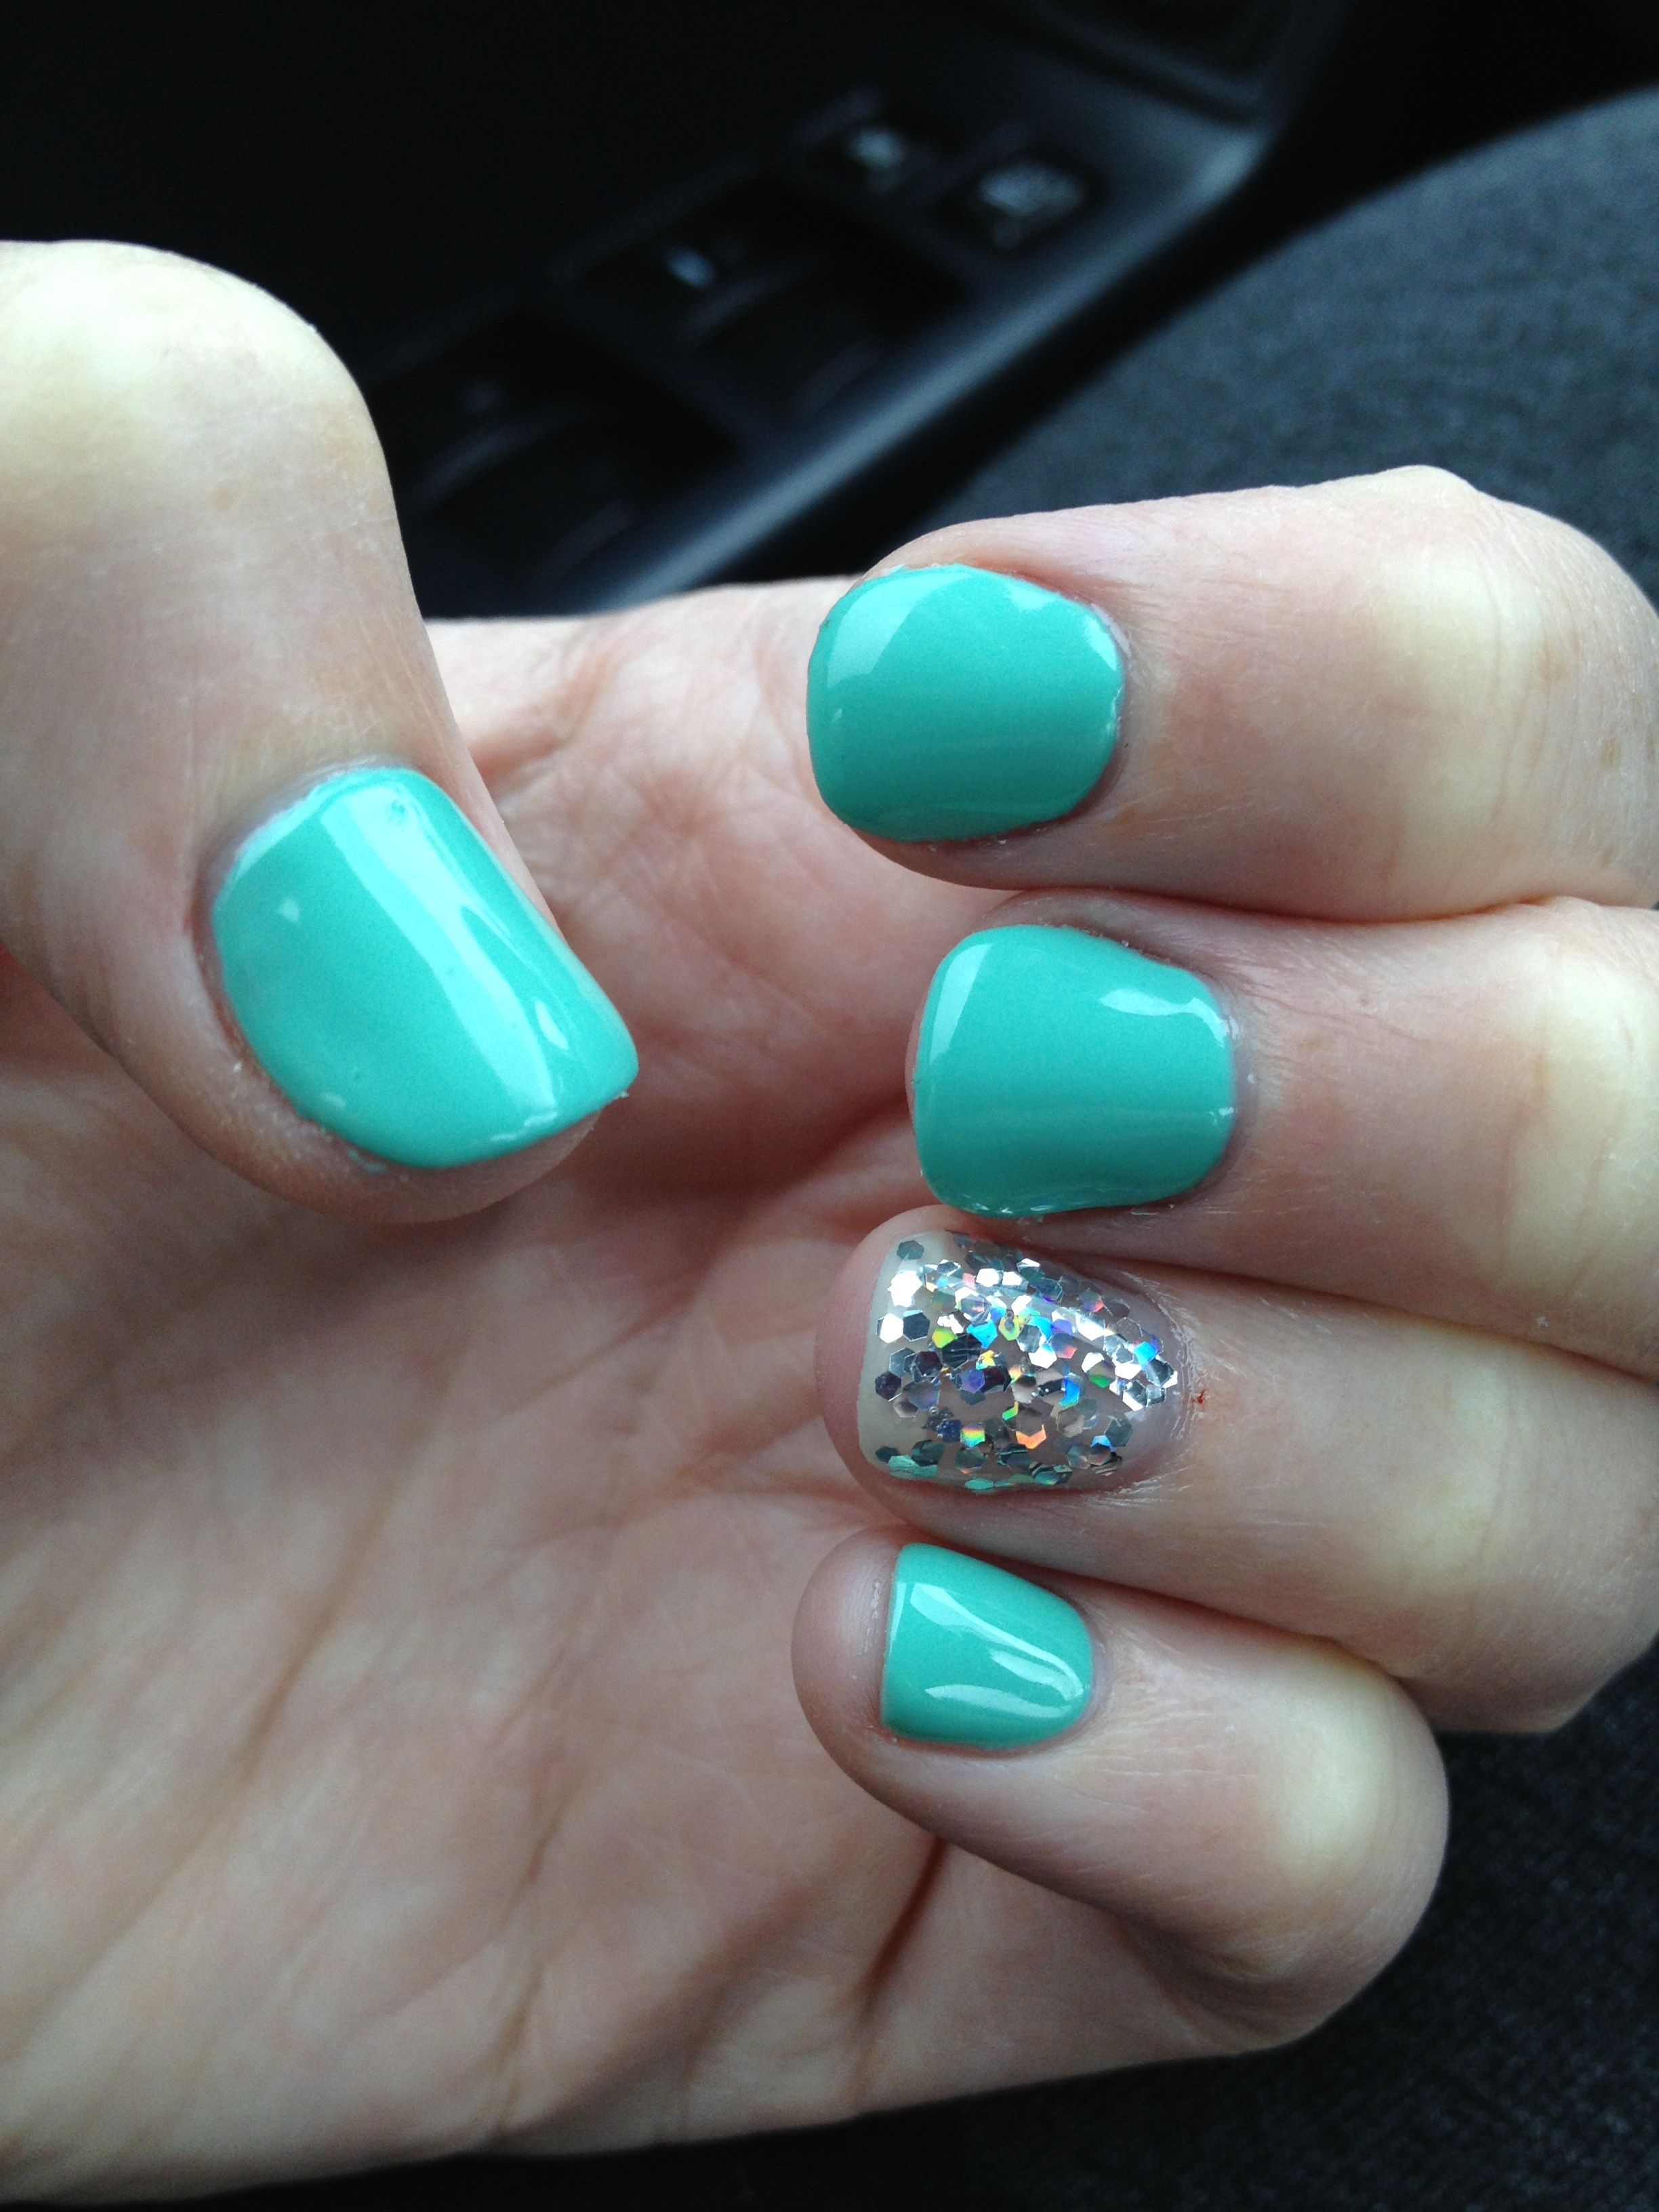 Pin by Rachel on unhas Manicure, Makeup nails, Nails